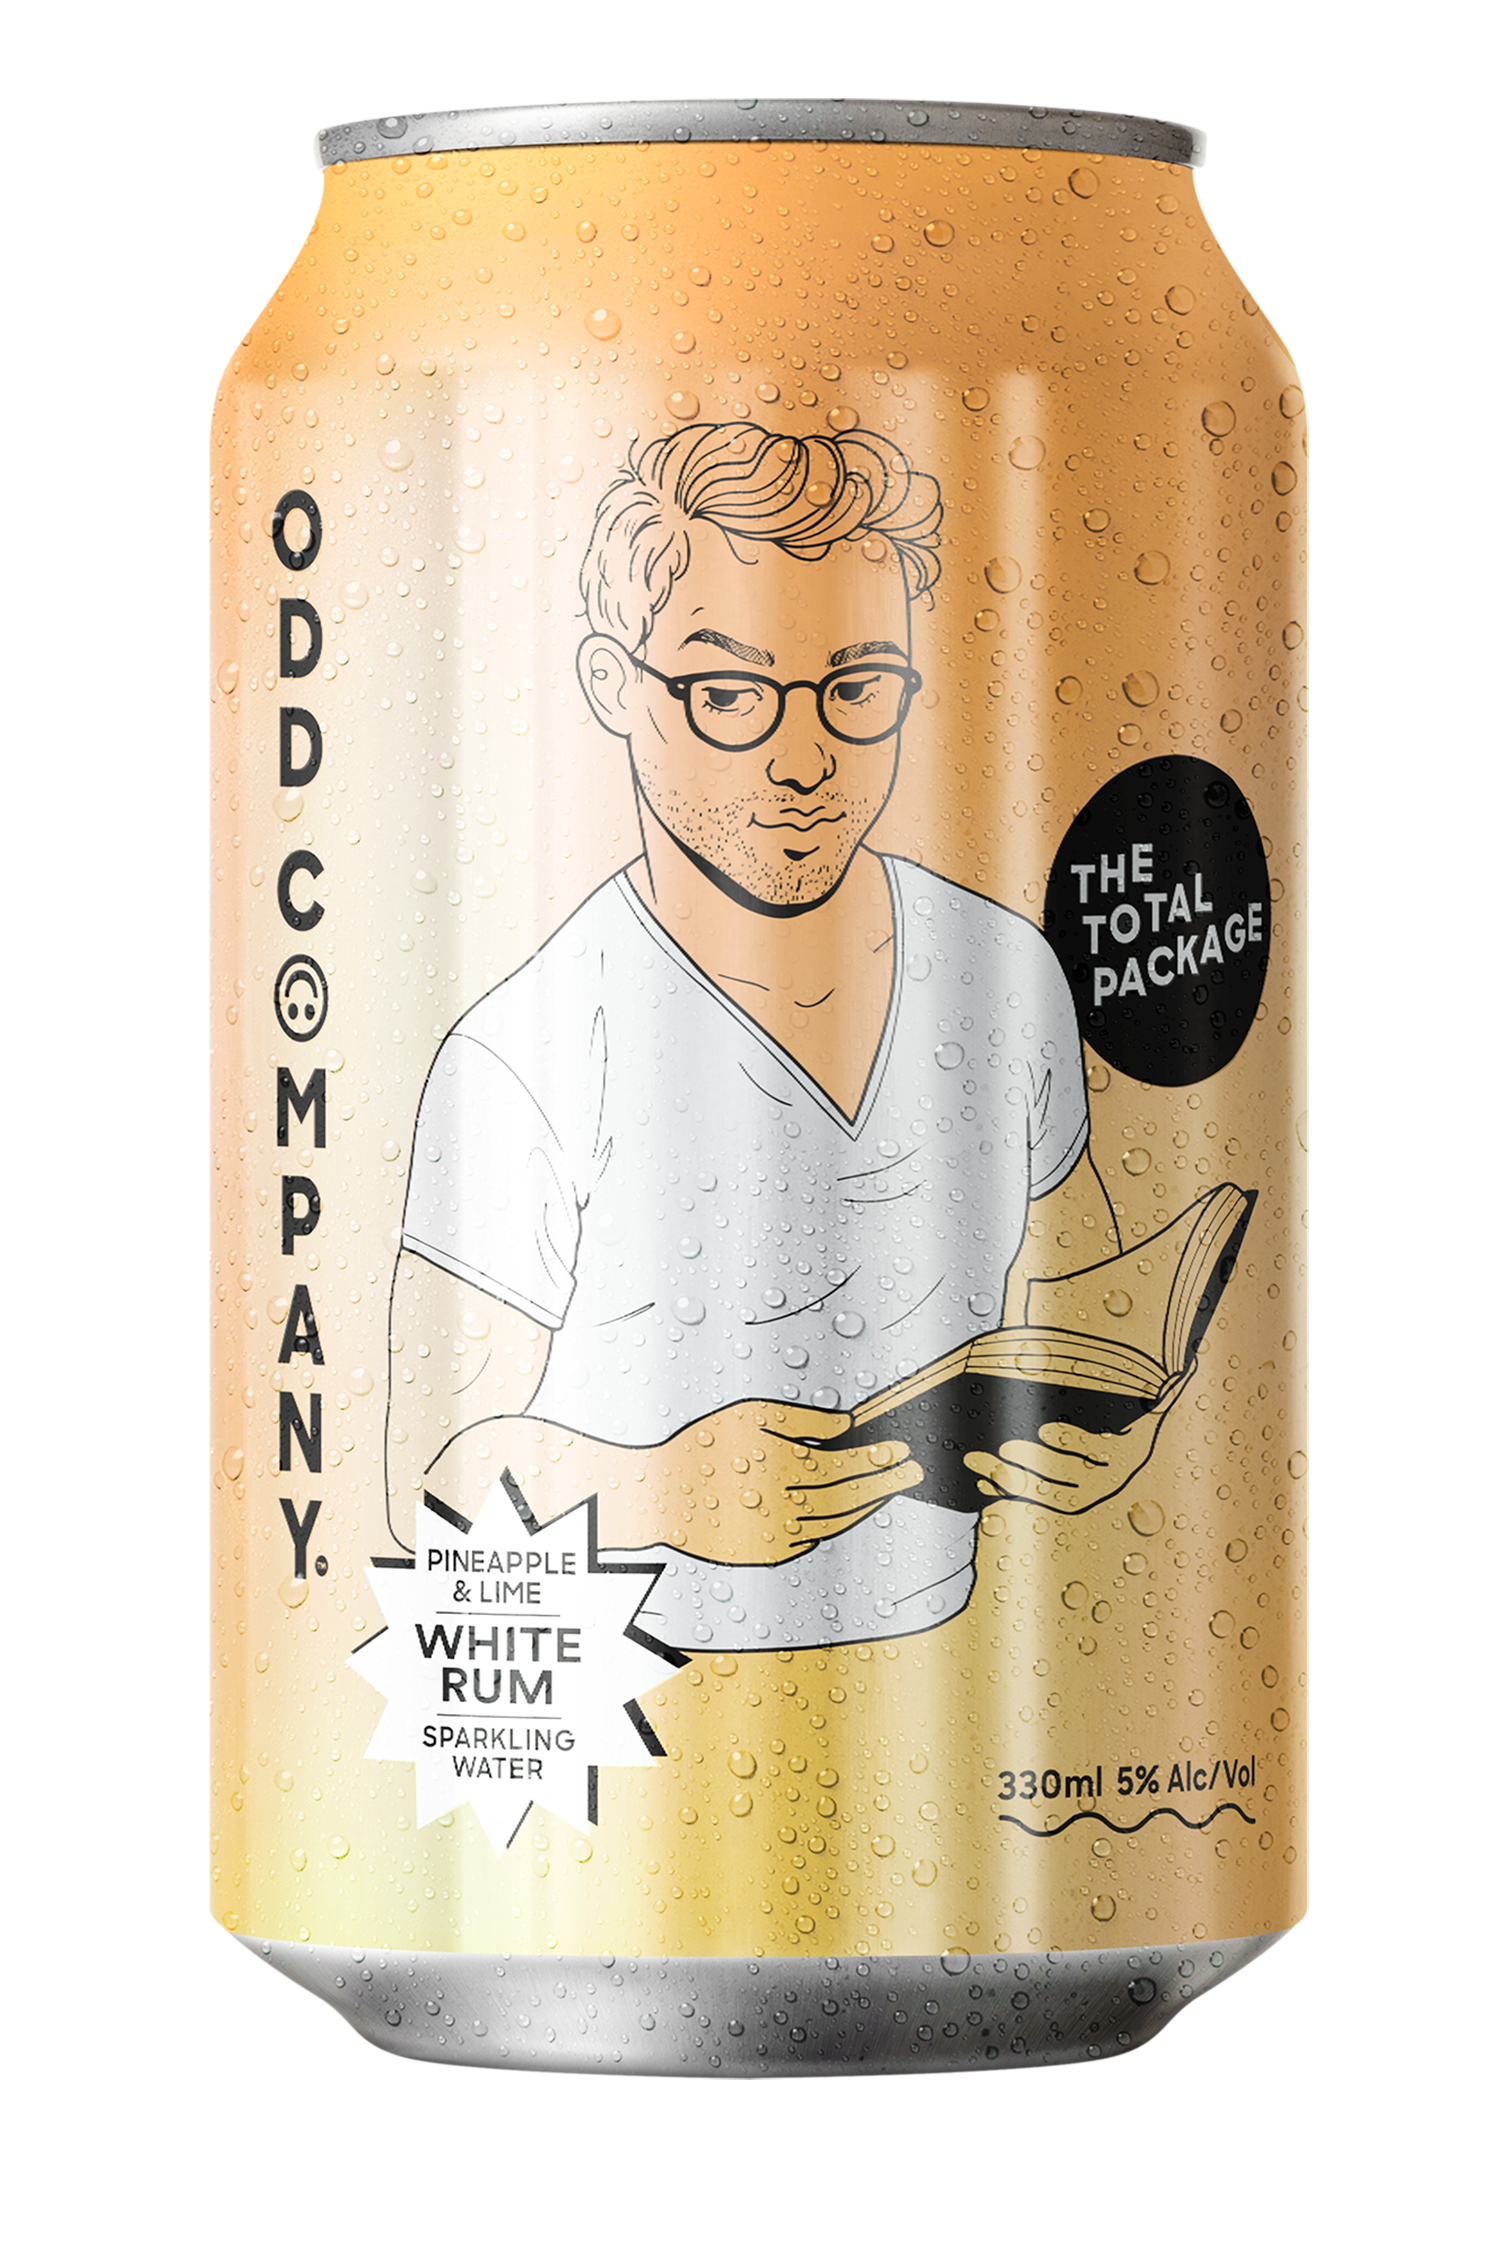 Can ODD COMP Total Package White Rum Pine Lime